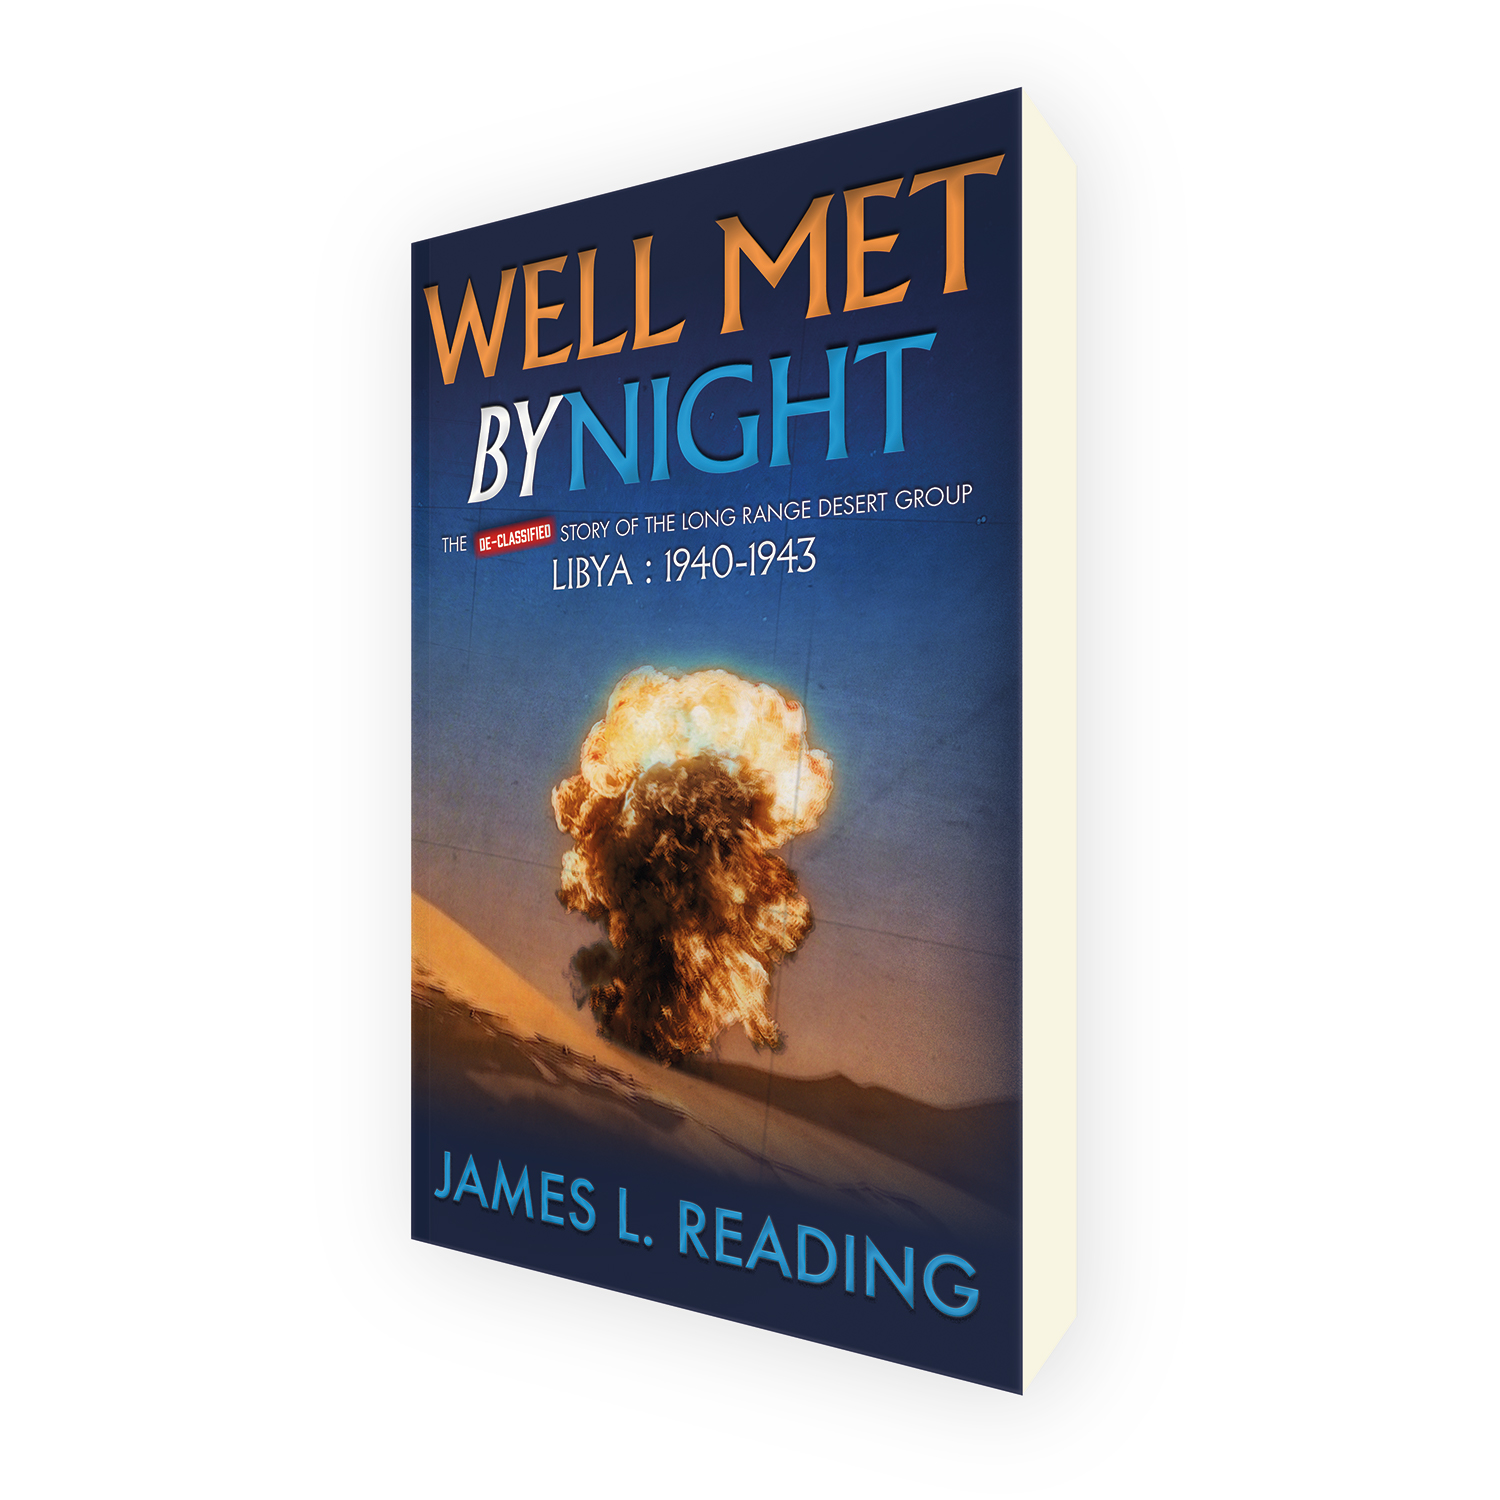 'Well Met By Night' is a bespoke cover design for a military history book. The book cover was designed by Mark Thomas, of coverness.com. To find out more about my book design services, please visit www.coverness.com.